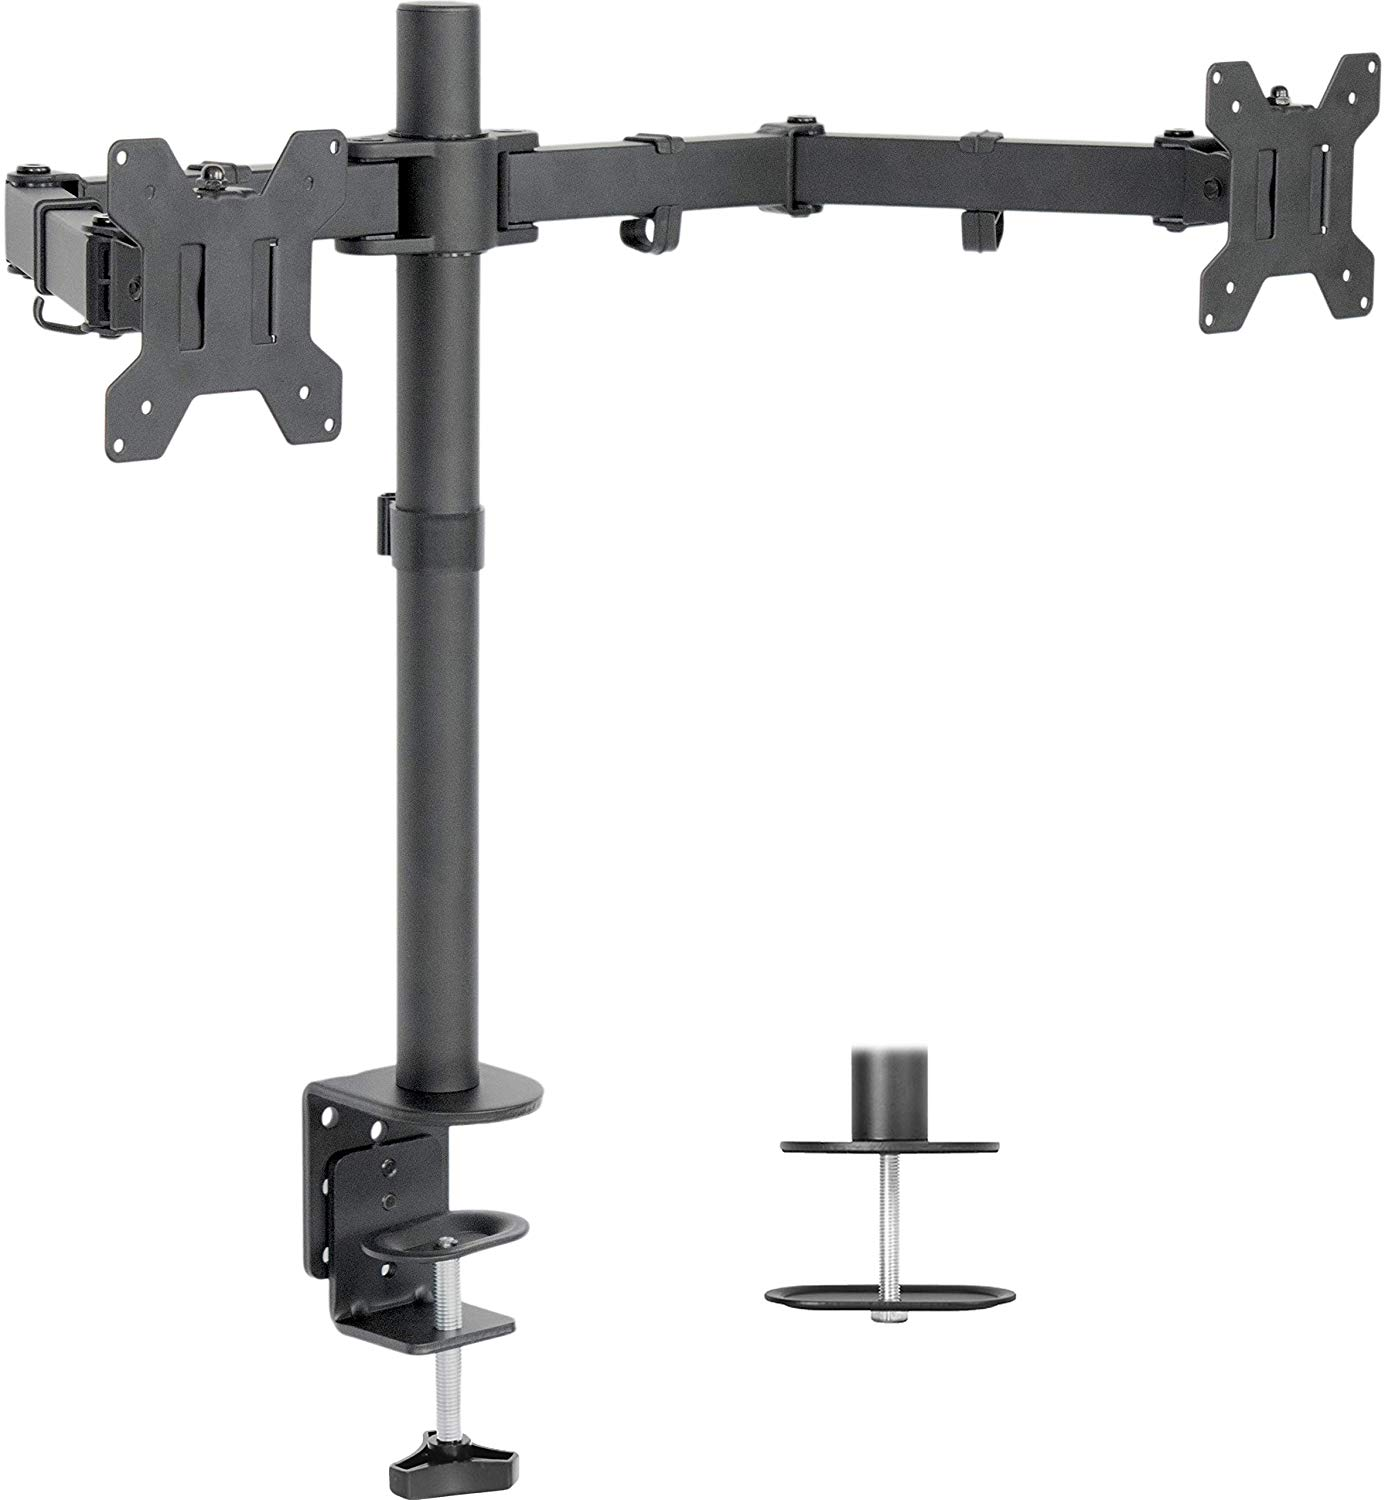 VIVO Dual Adjustable Arms